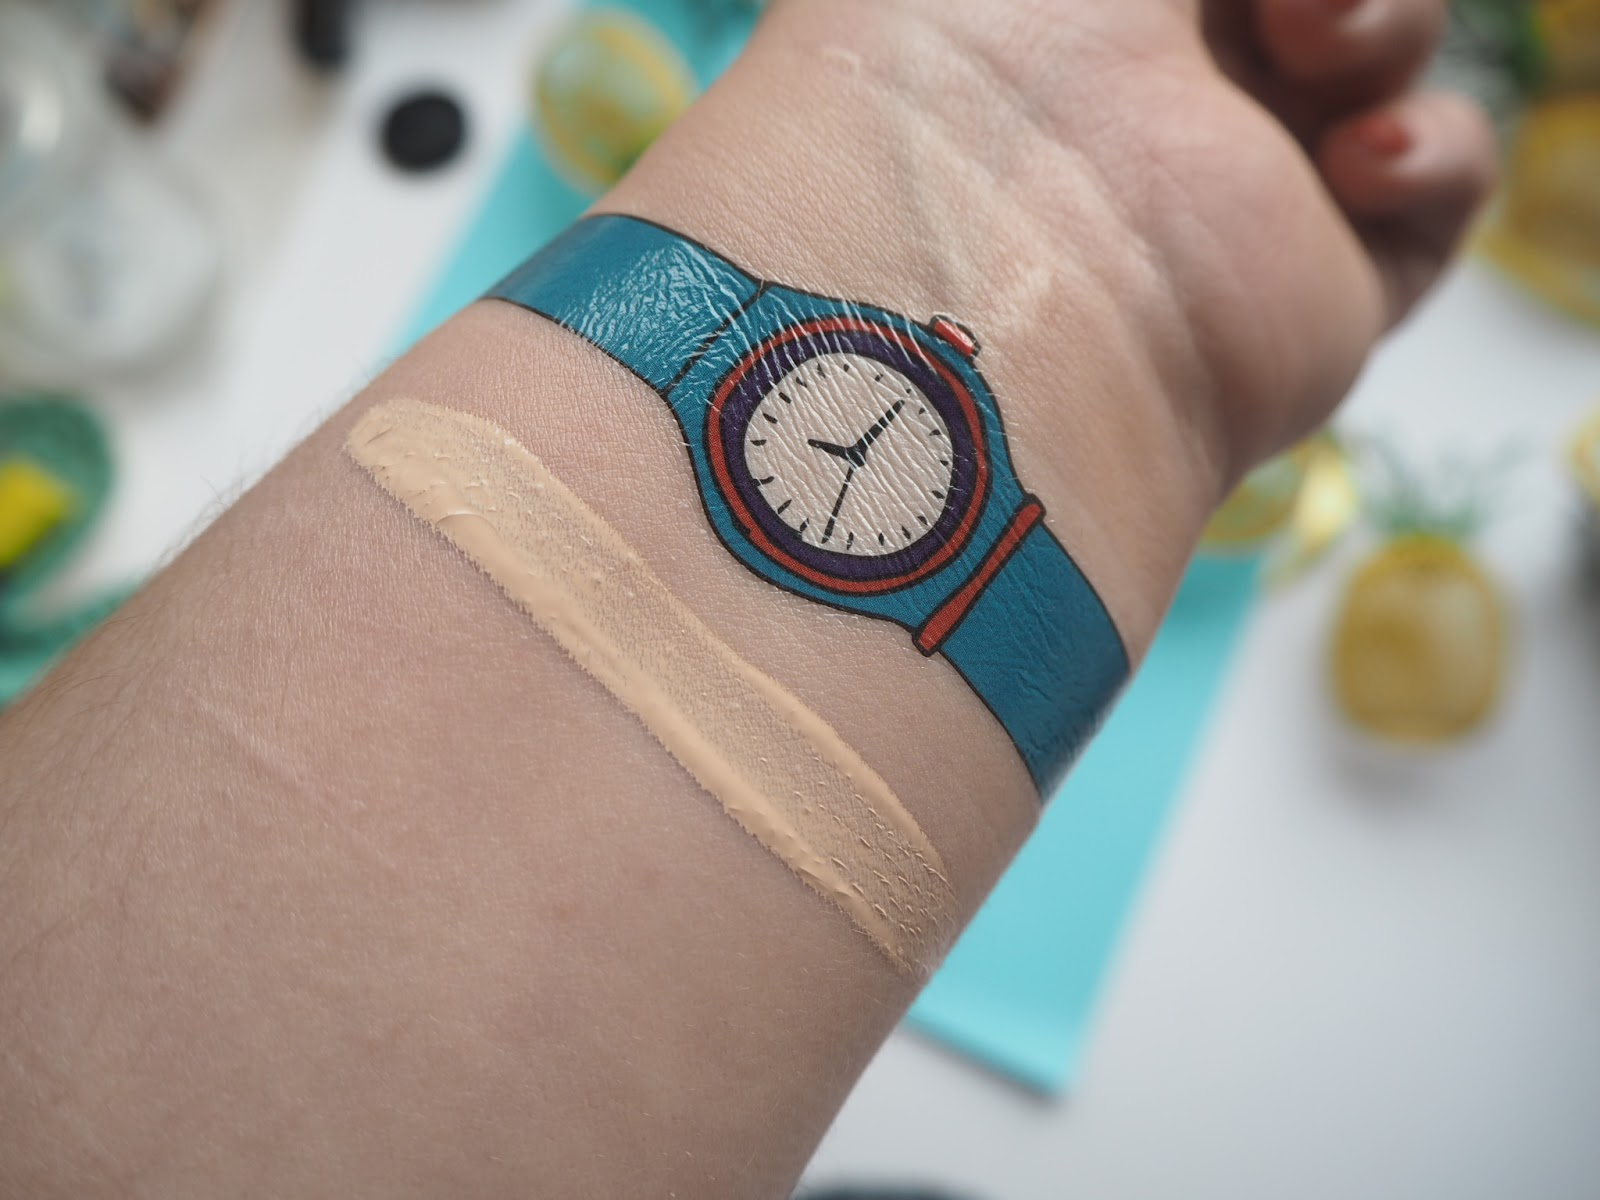 L'Oreal True Match Concealer Review & Swatches